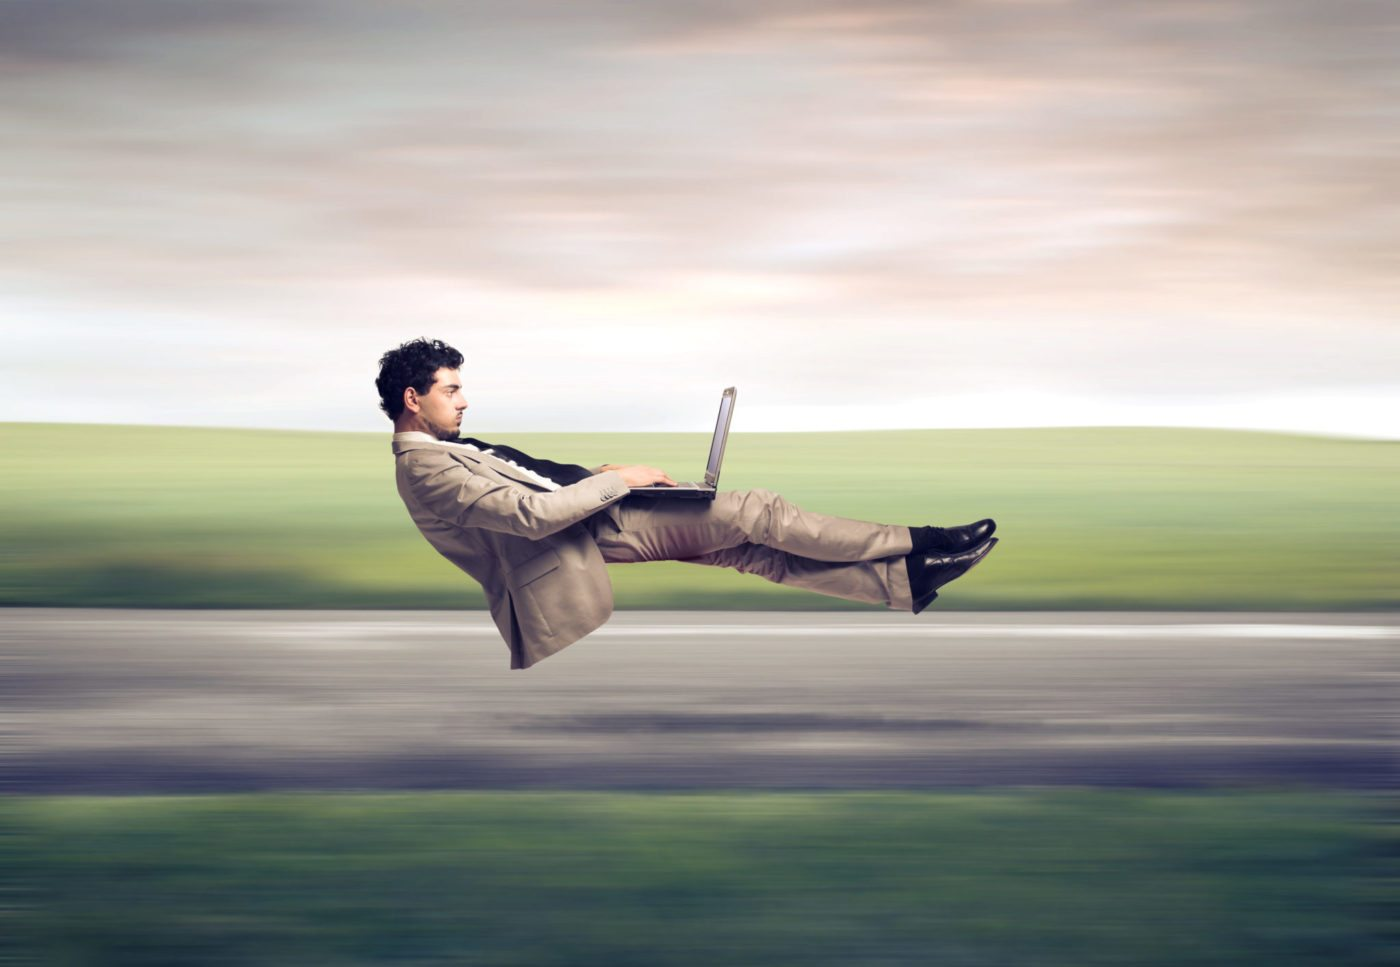 What to expect from next-gen paperless platforms